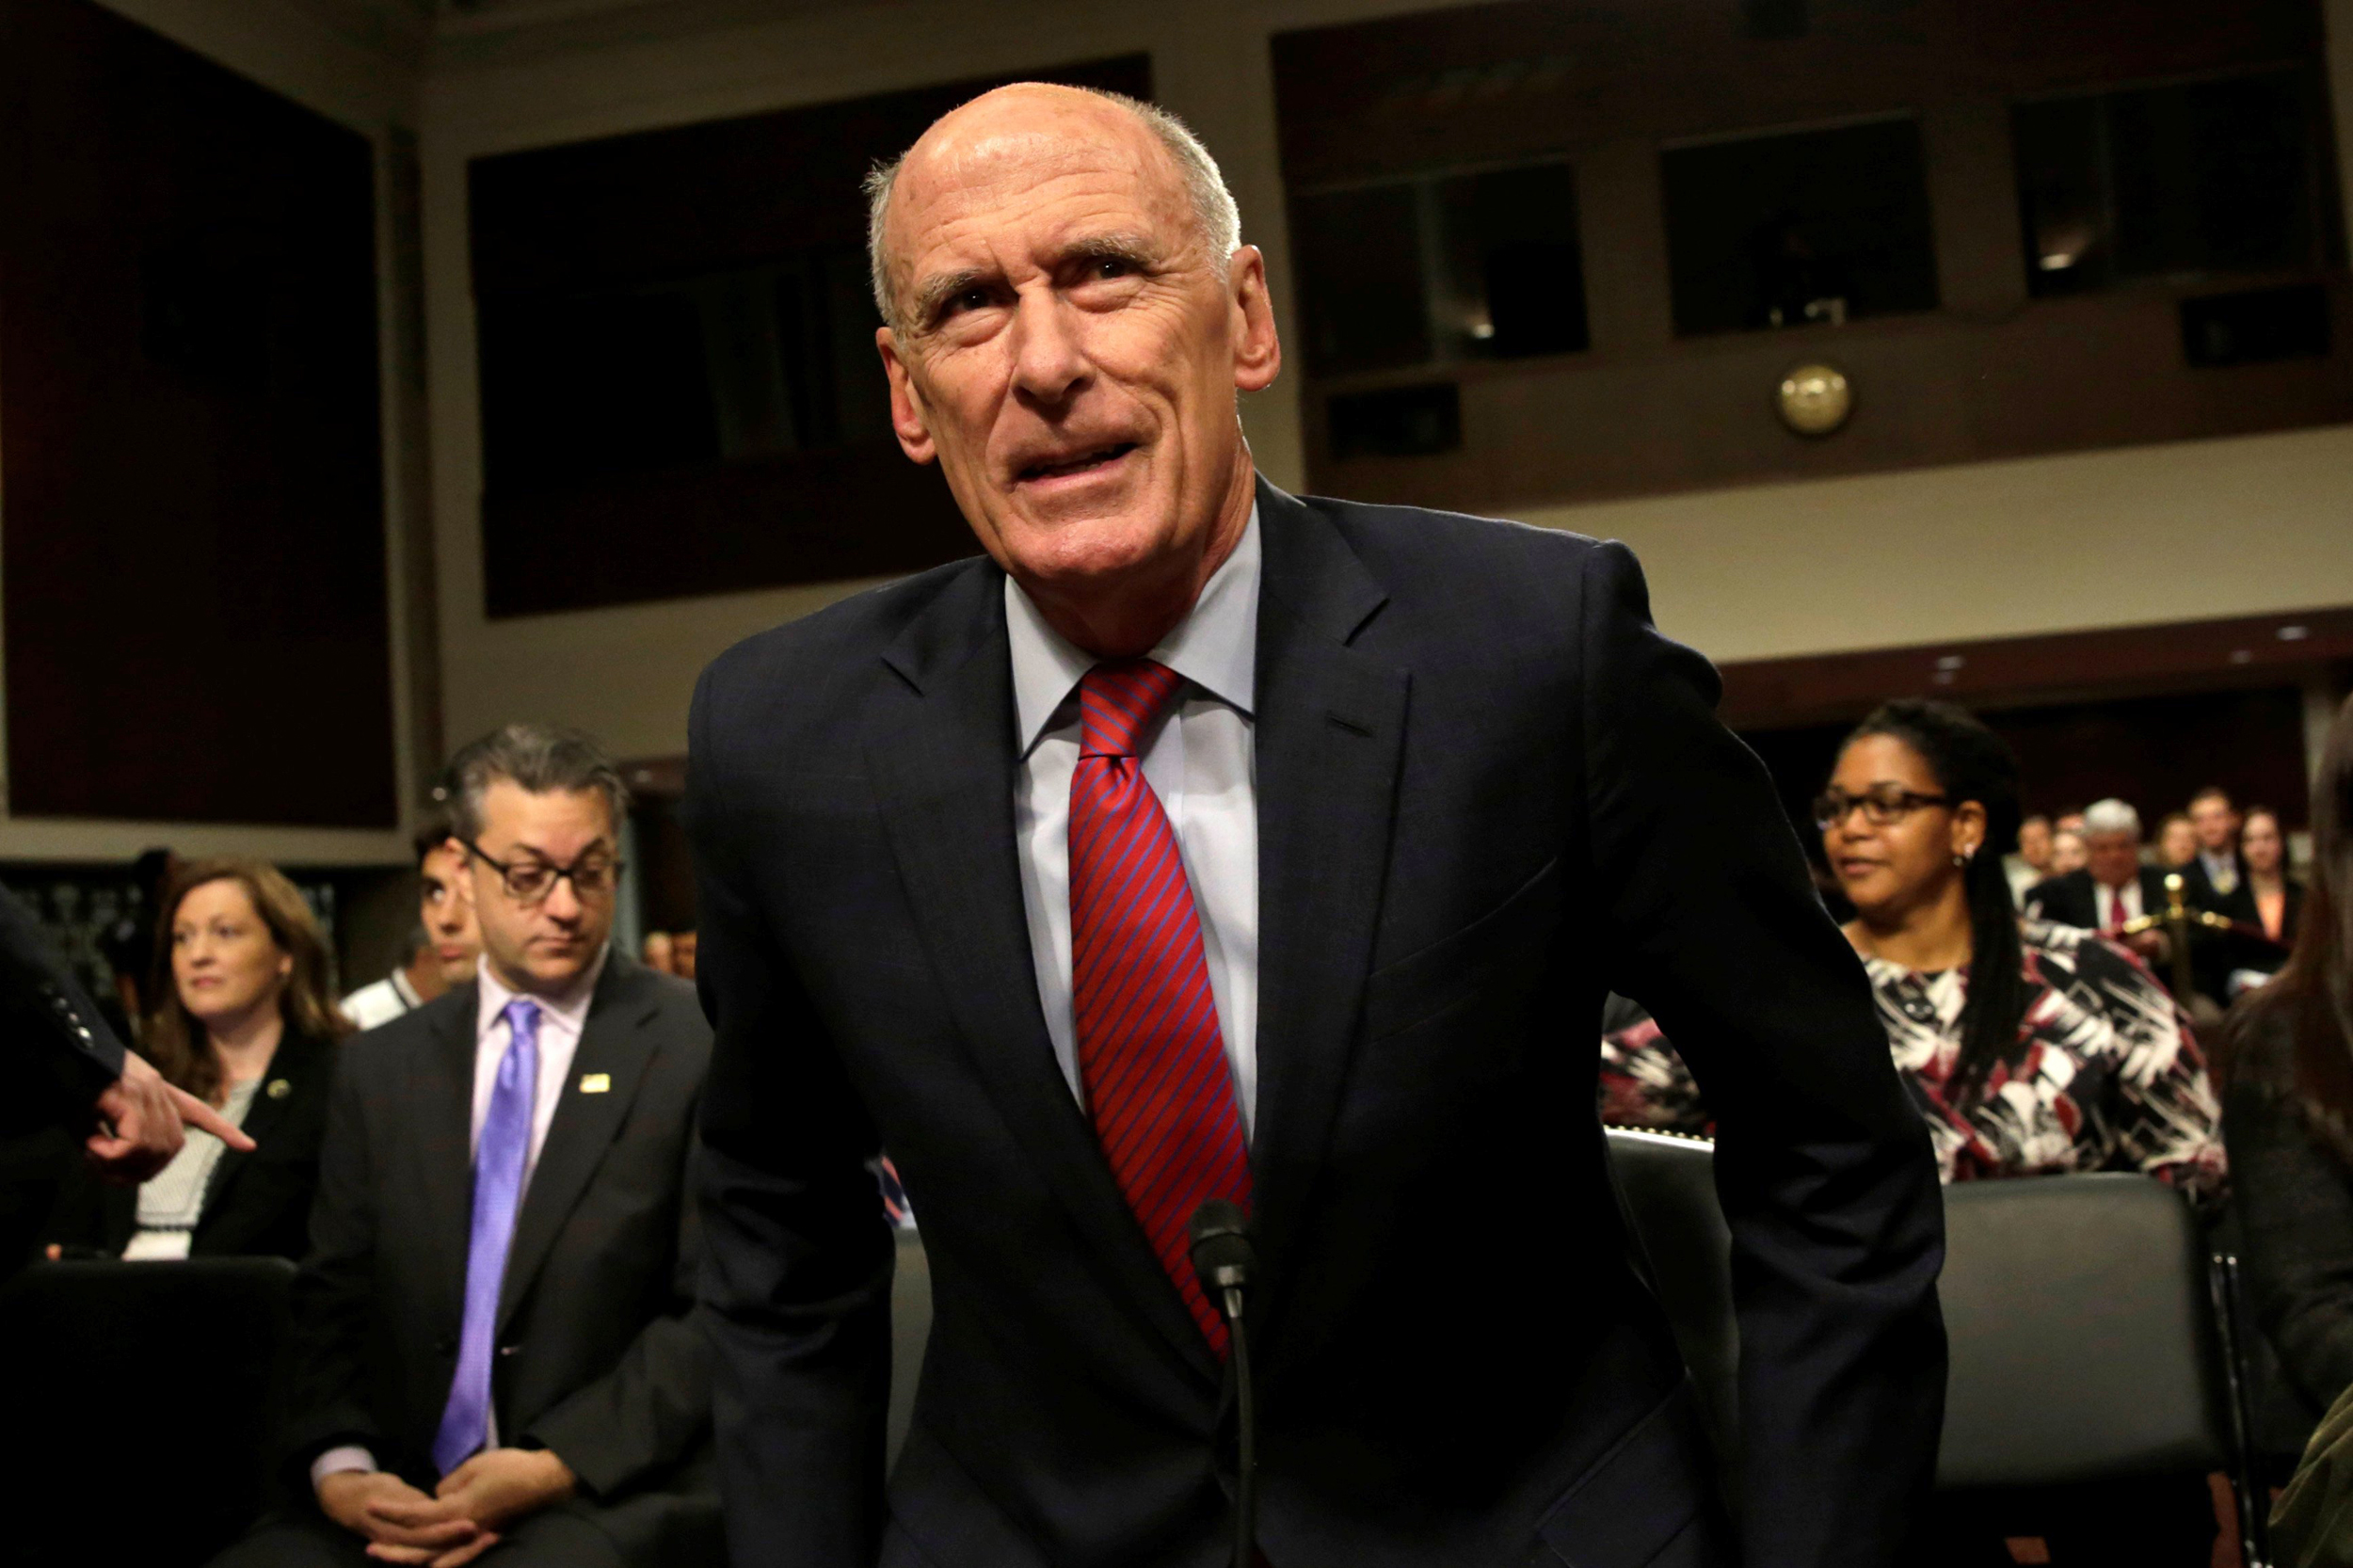 Coats to House Investigators: Trump Obsessed With Russia Probe